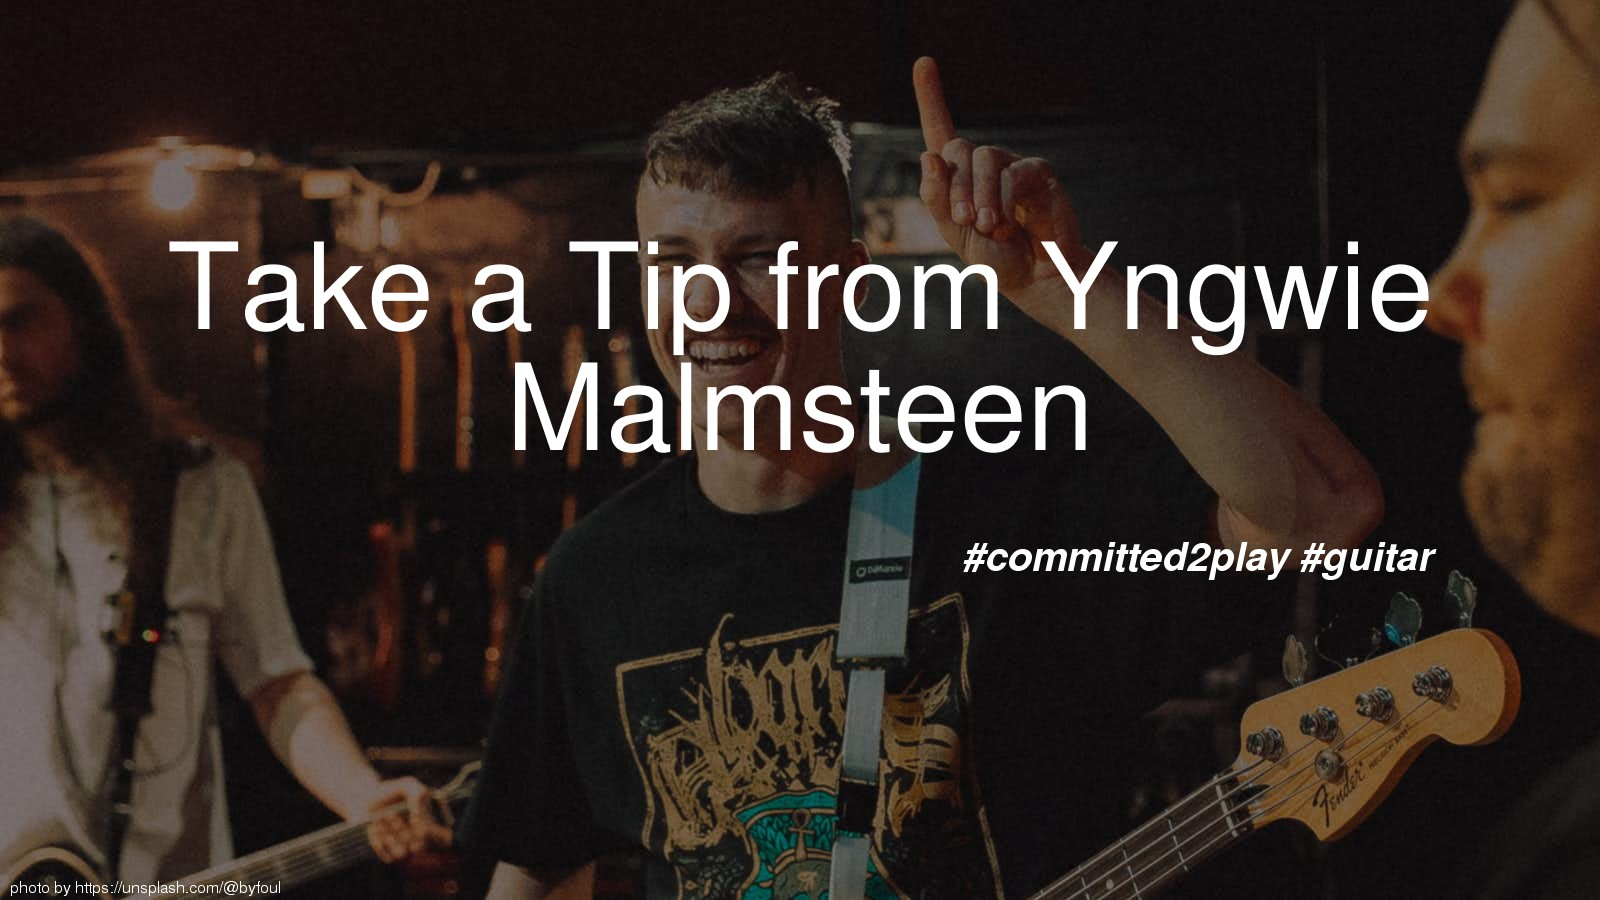 Take a Tip from Yngwie Malmsteen